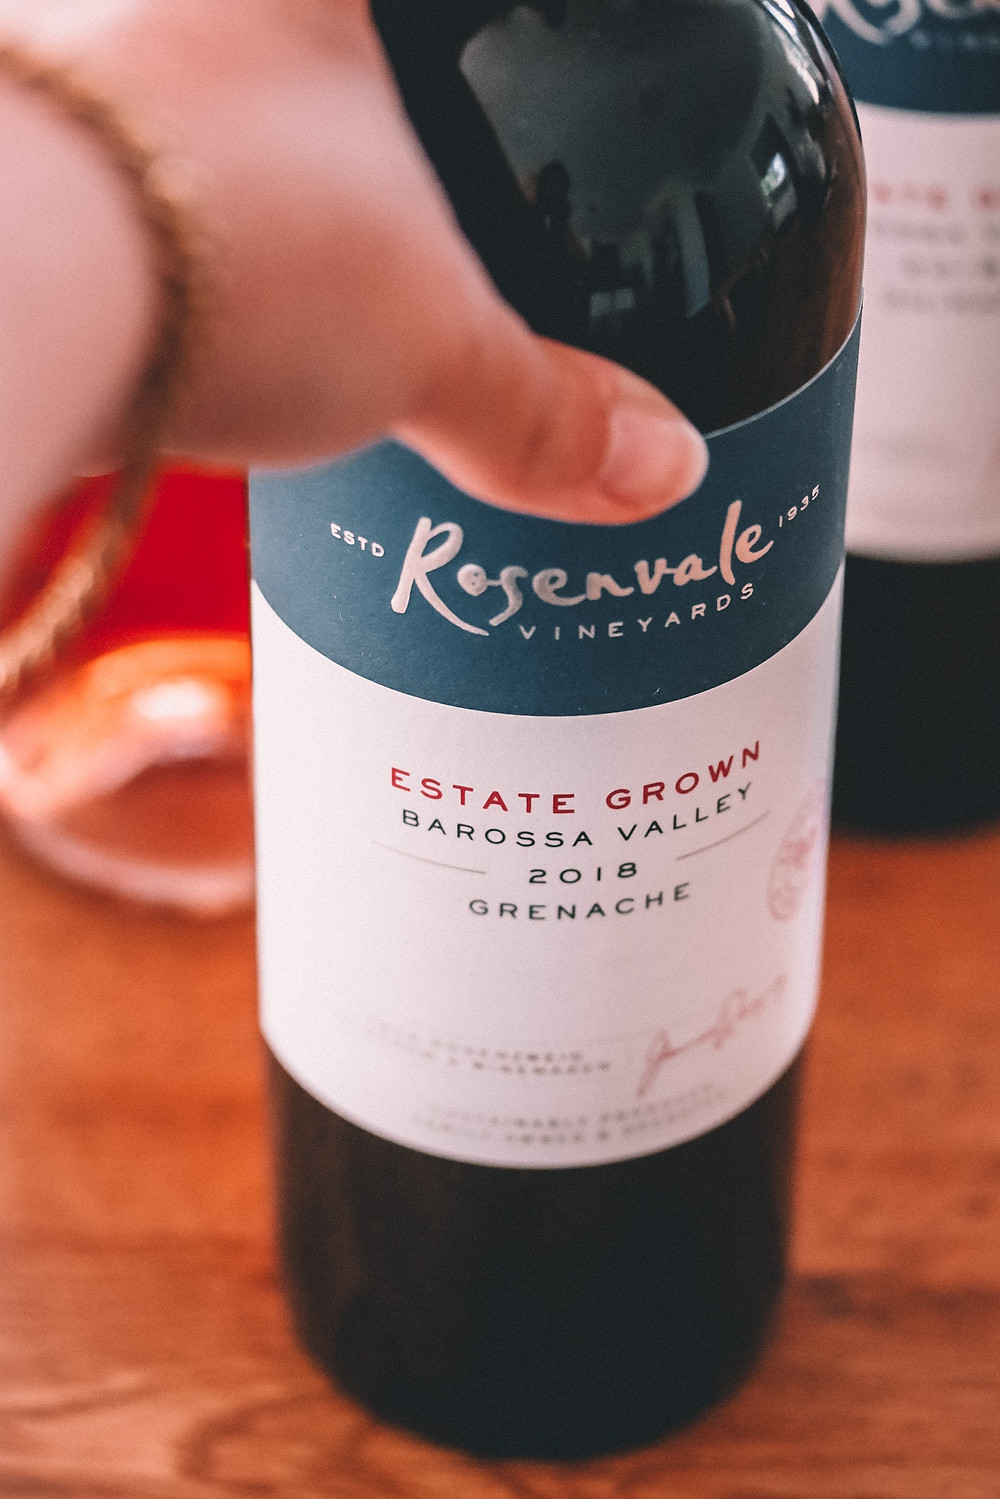 Hand reaching for a bottle of grenache red wine